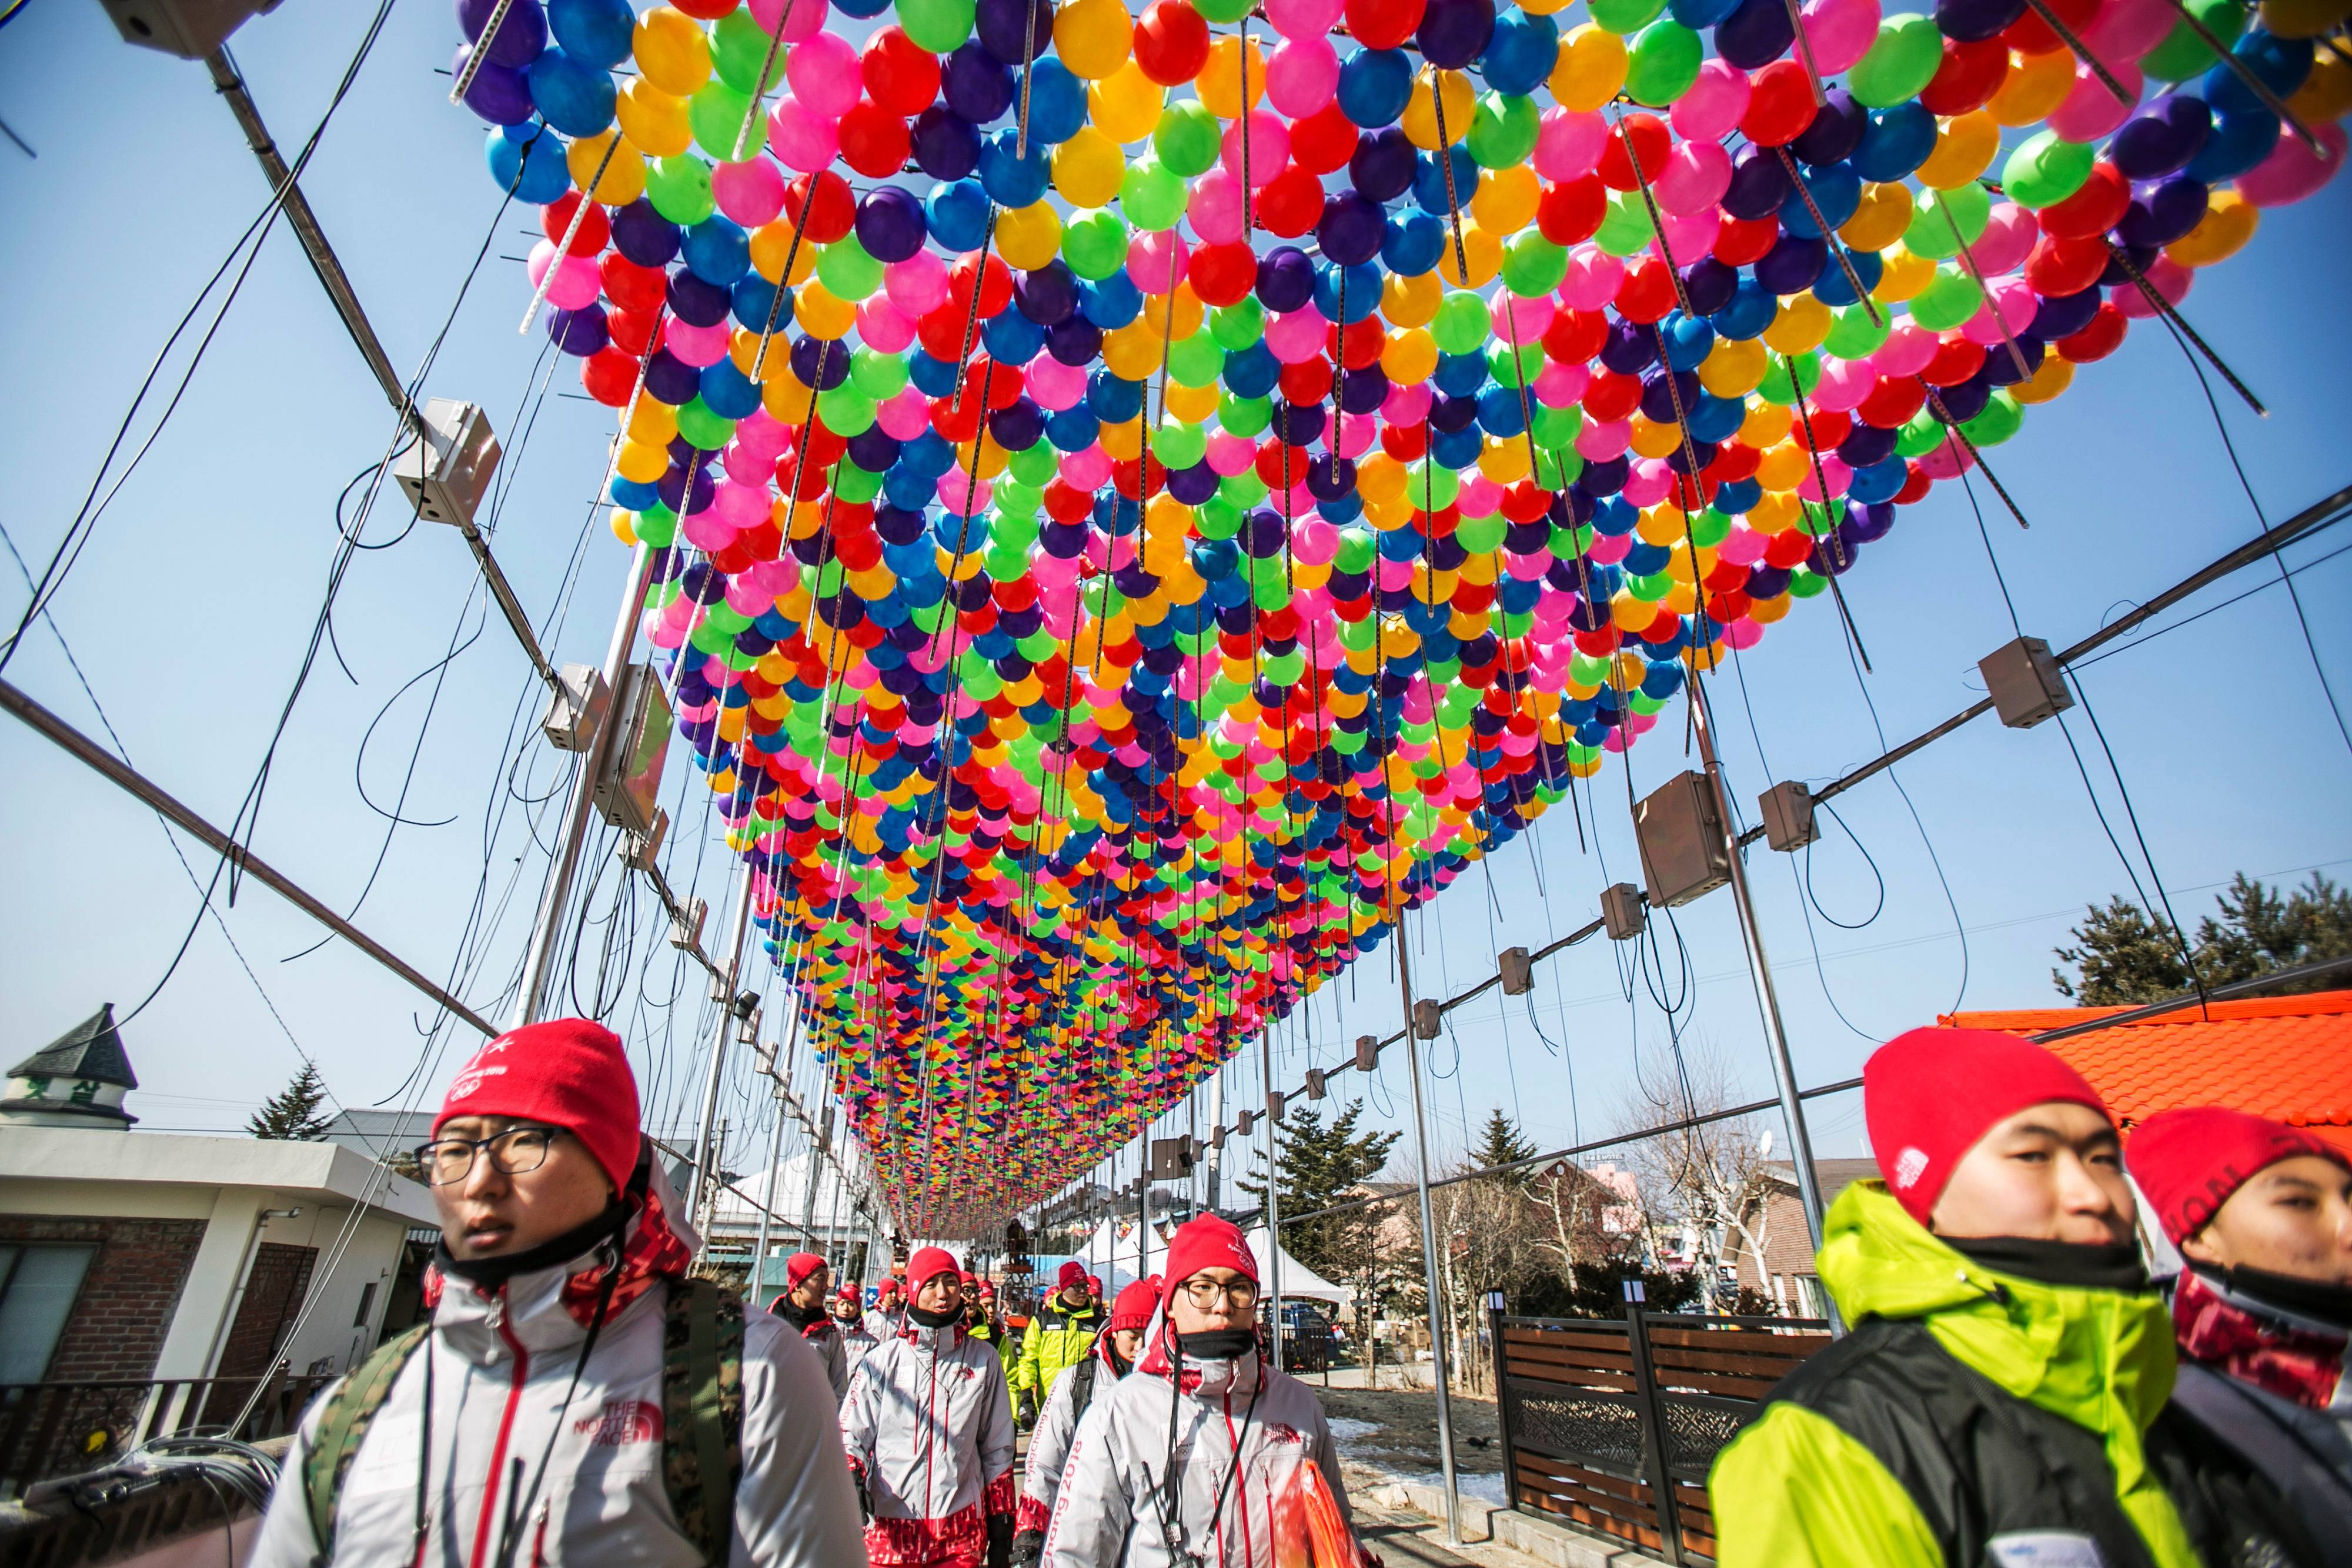 Olympic volunteers walk under balloon decorations ahead of the 2018 Pyeongchang Winter Olympic Games in the Hoenggye-ri village area of Pyeongchang, South Korea, on Feb. 8, 2018. MUST CREDIT: Bloomberg photo by Jean Chung.